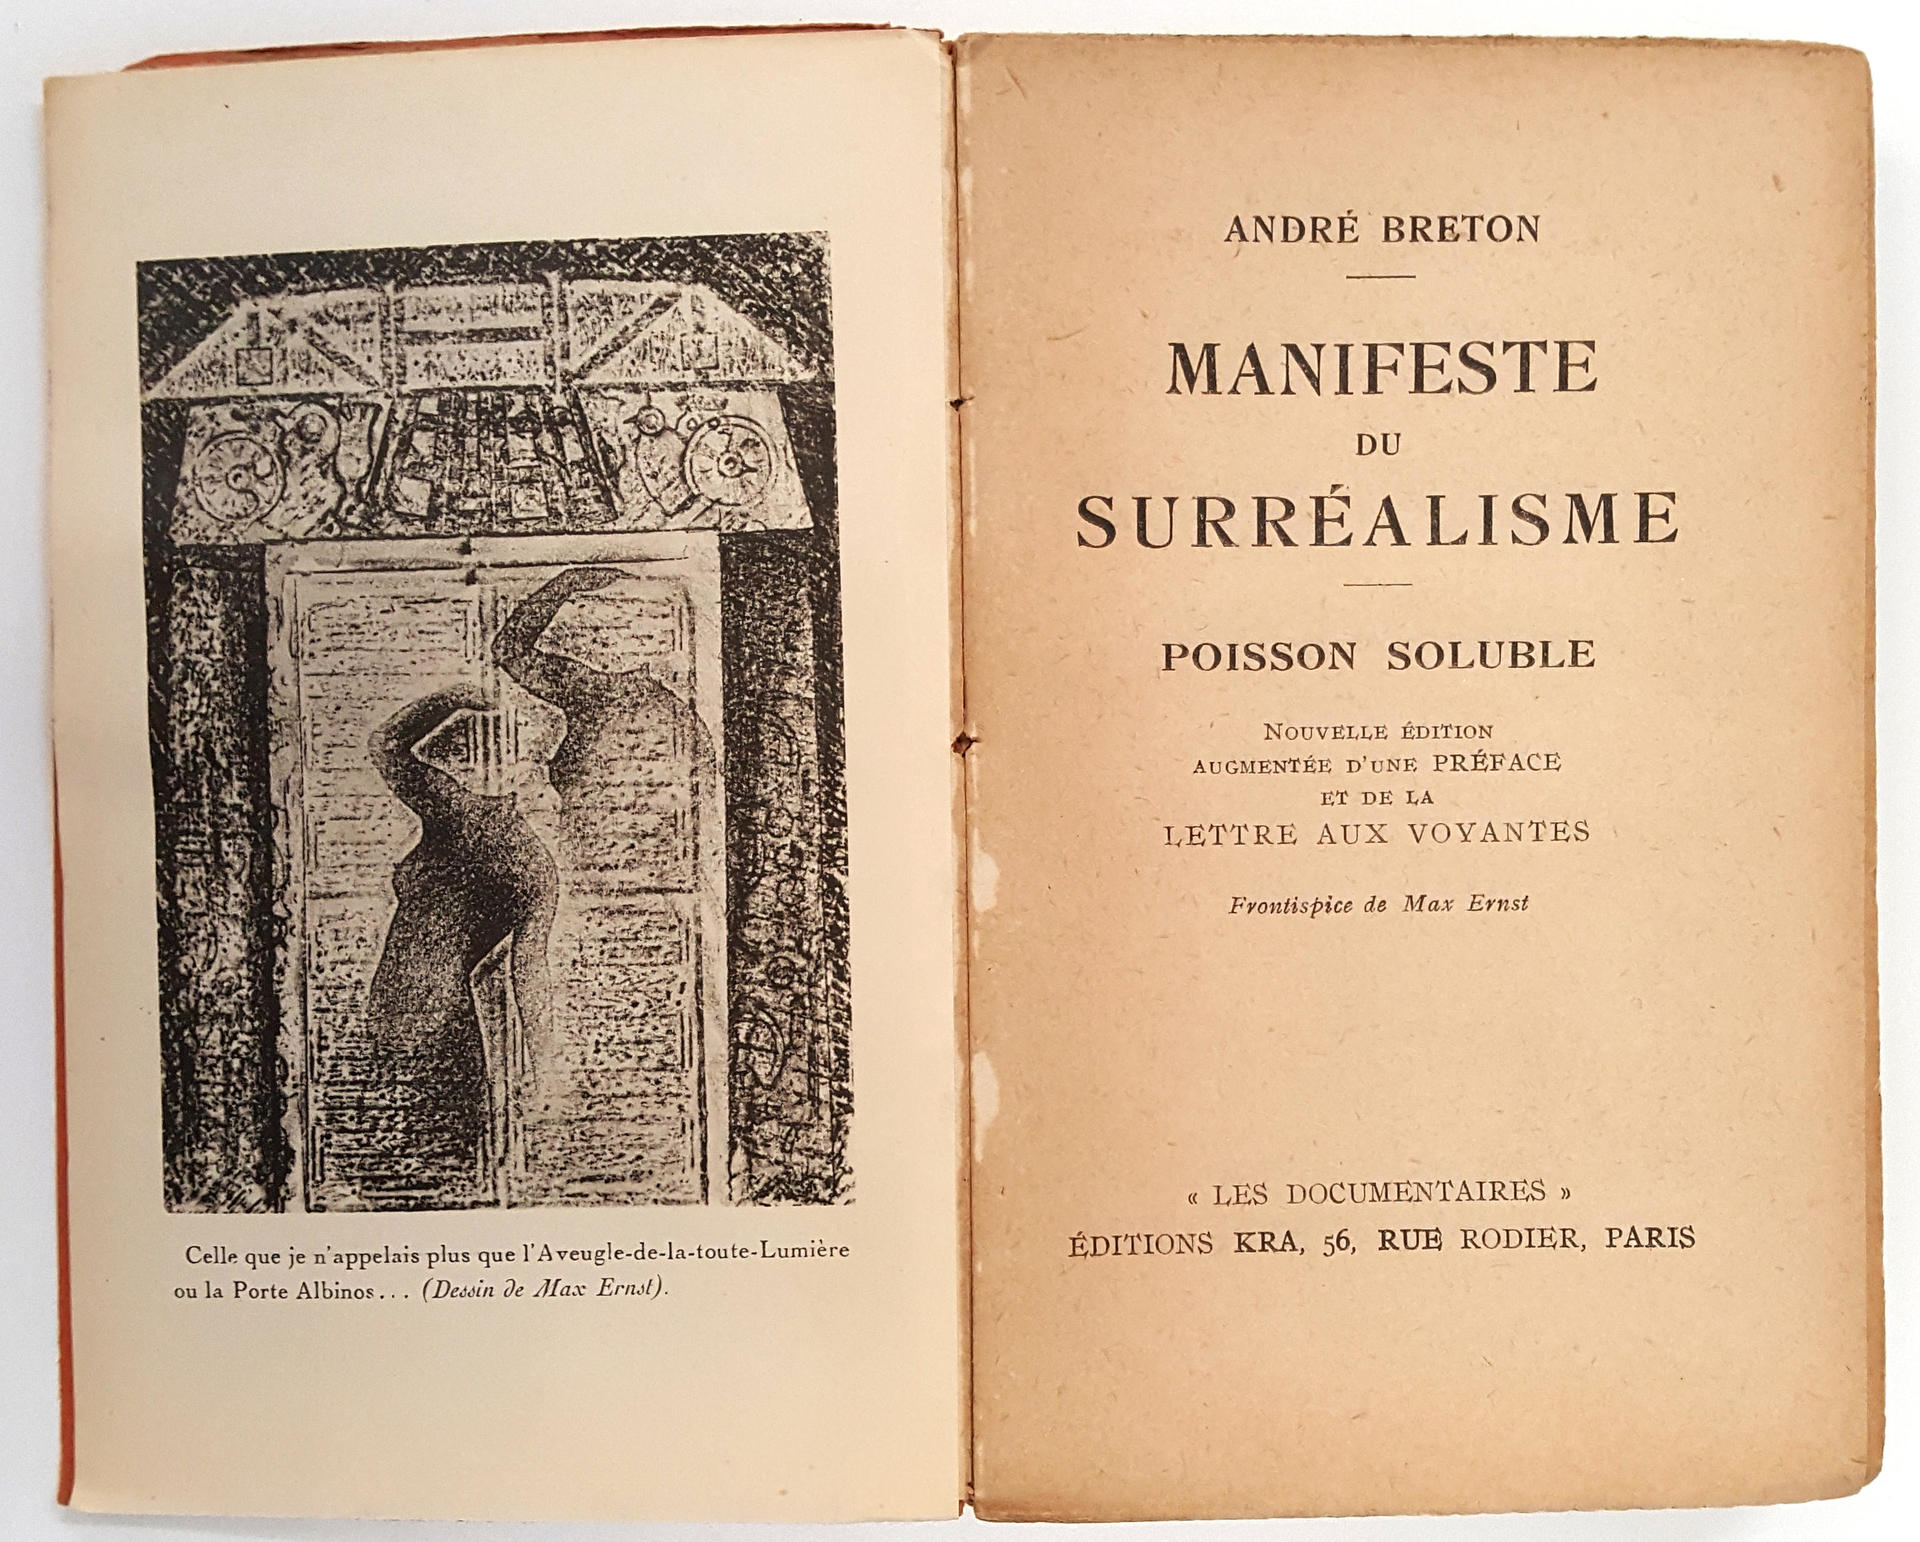 Manifeste du Surrealisme [and] Poisson Soluble, Lettre aux voyantes, by Andre Breton, Paris, Simon Kra, 1929